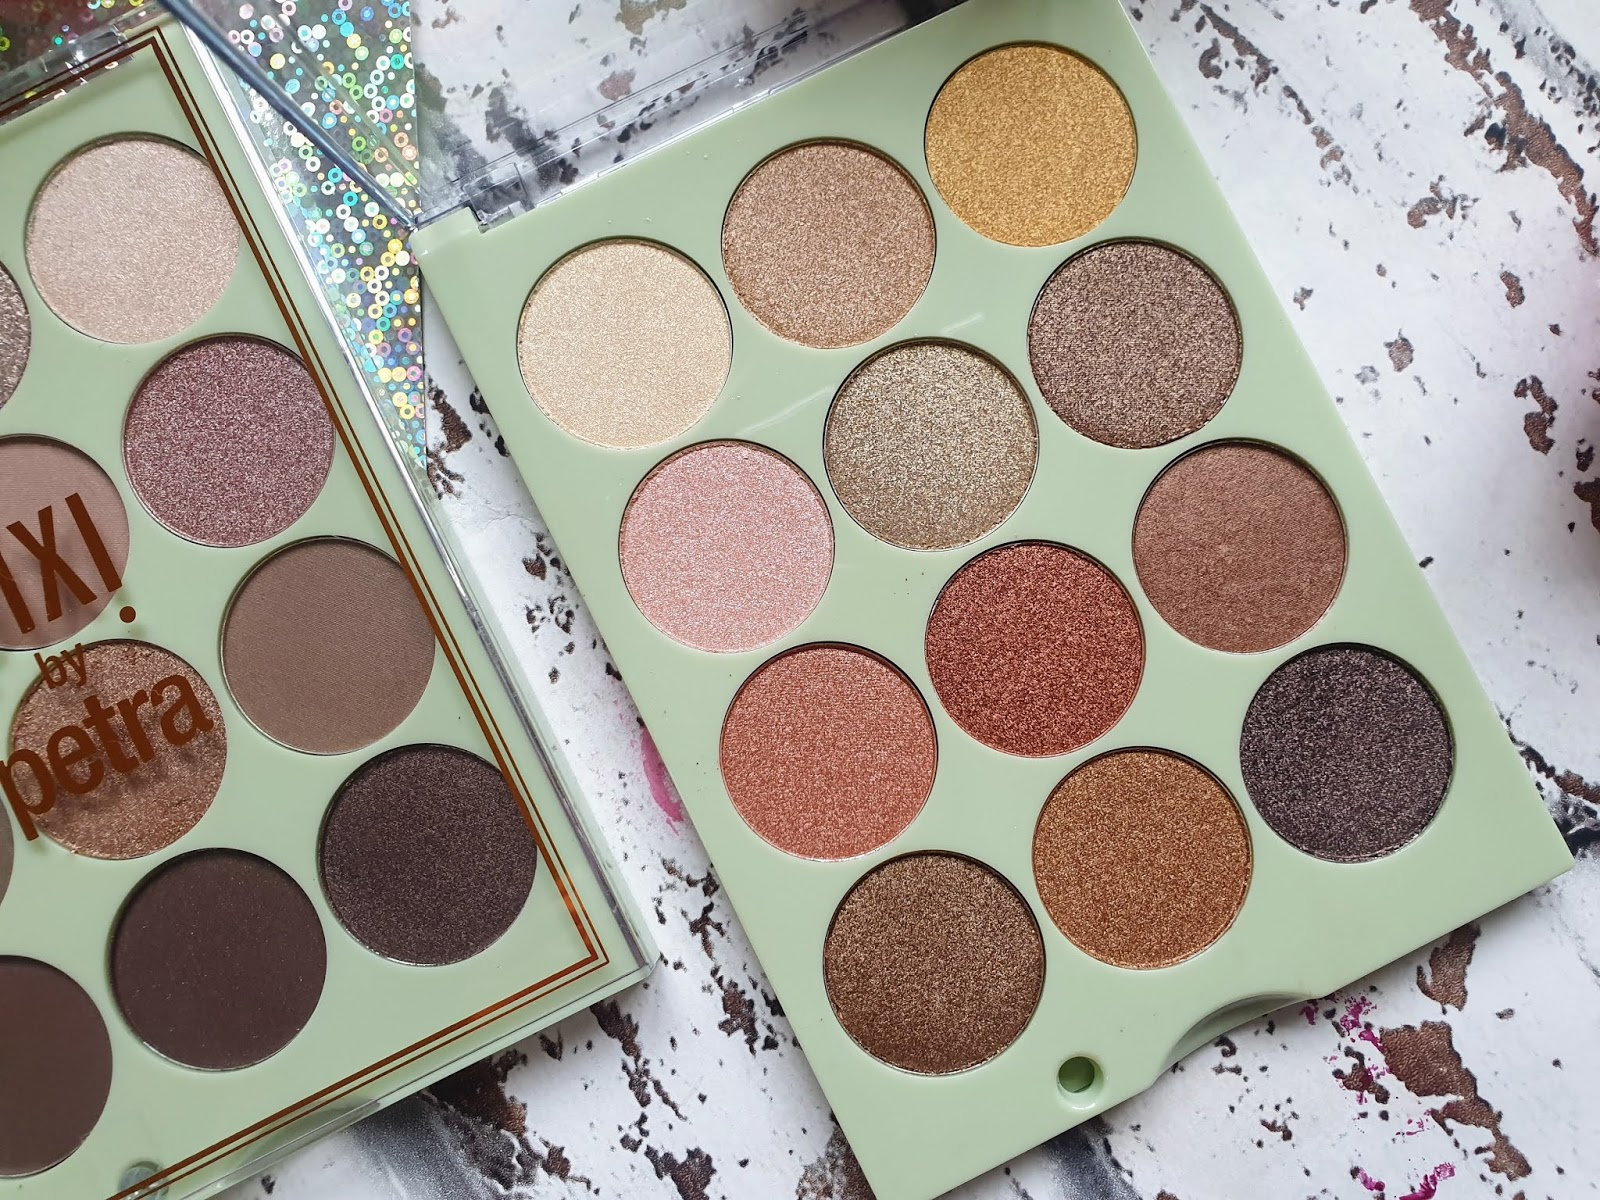 Pixi Beauty Eye Reflections Shadow Palettes | Review